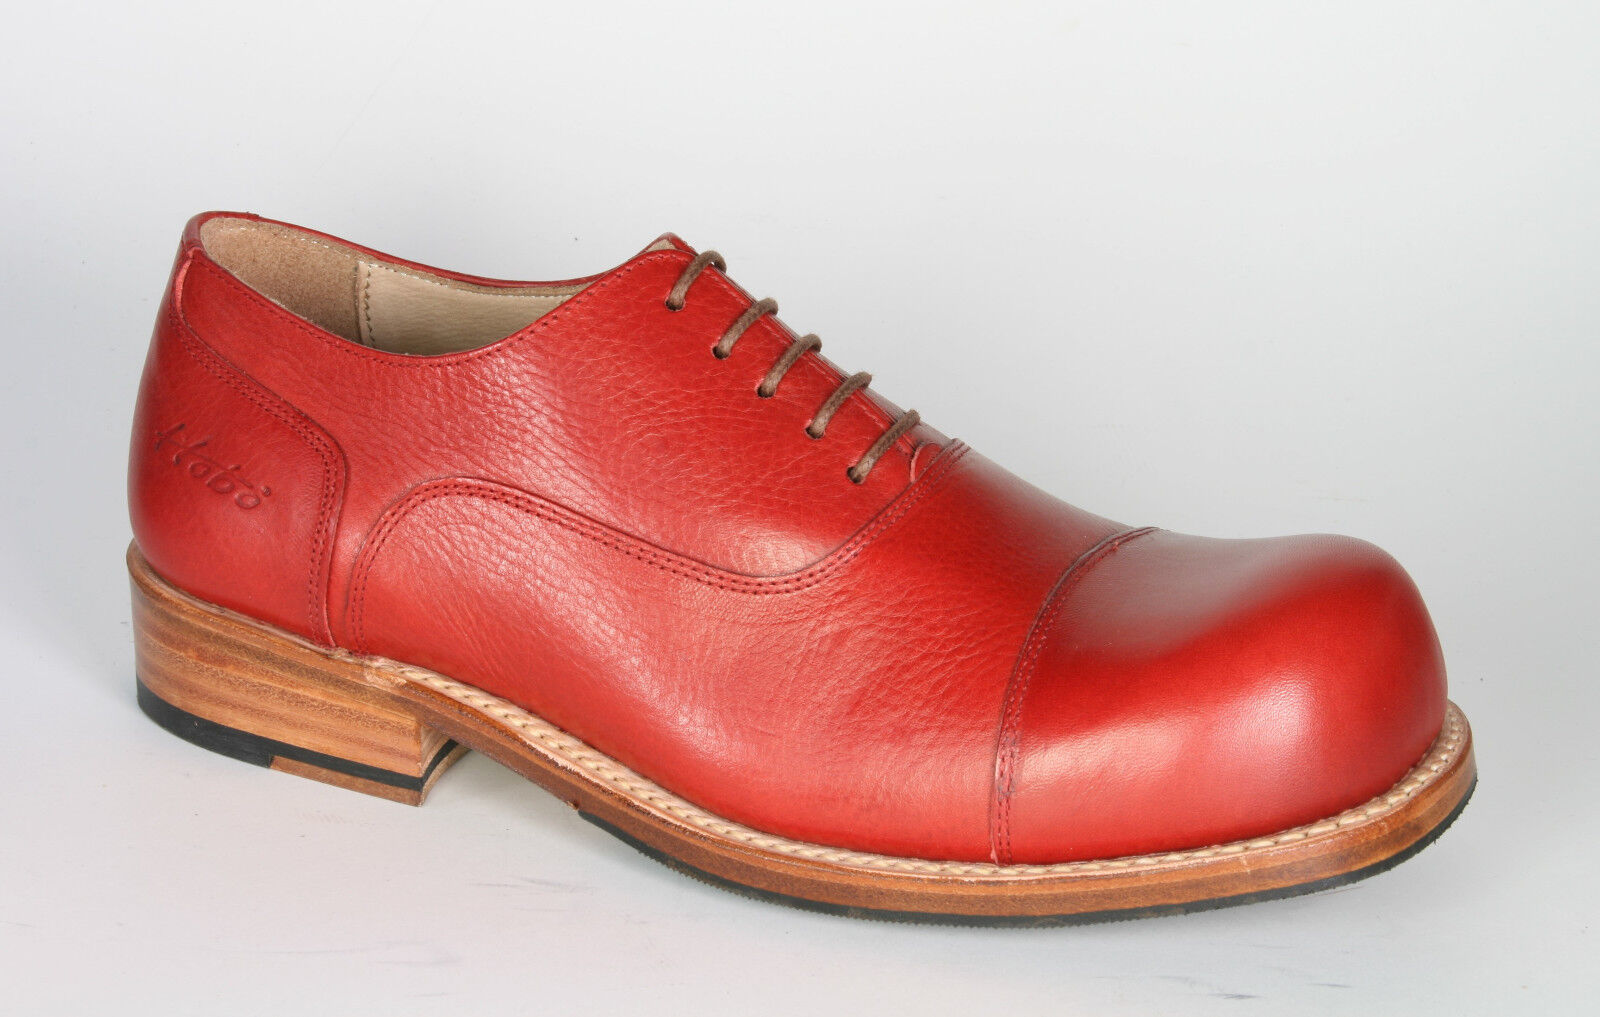 181 HOBO Schnürschuhe CHARLY MARCELLE Blood Red Rahmengenähte Schuhe